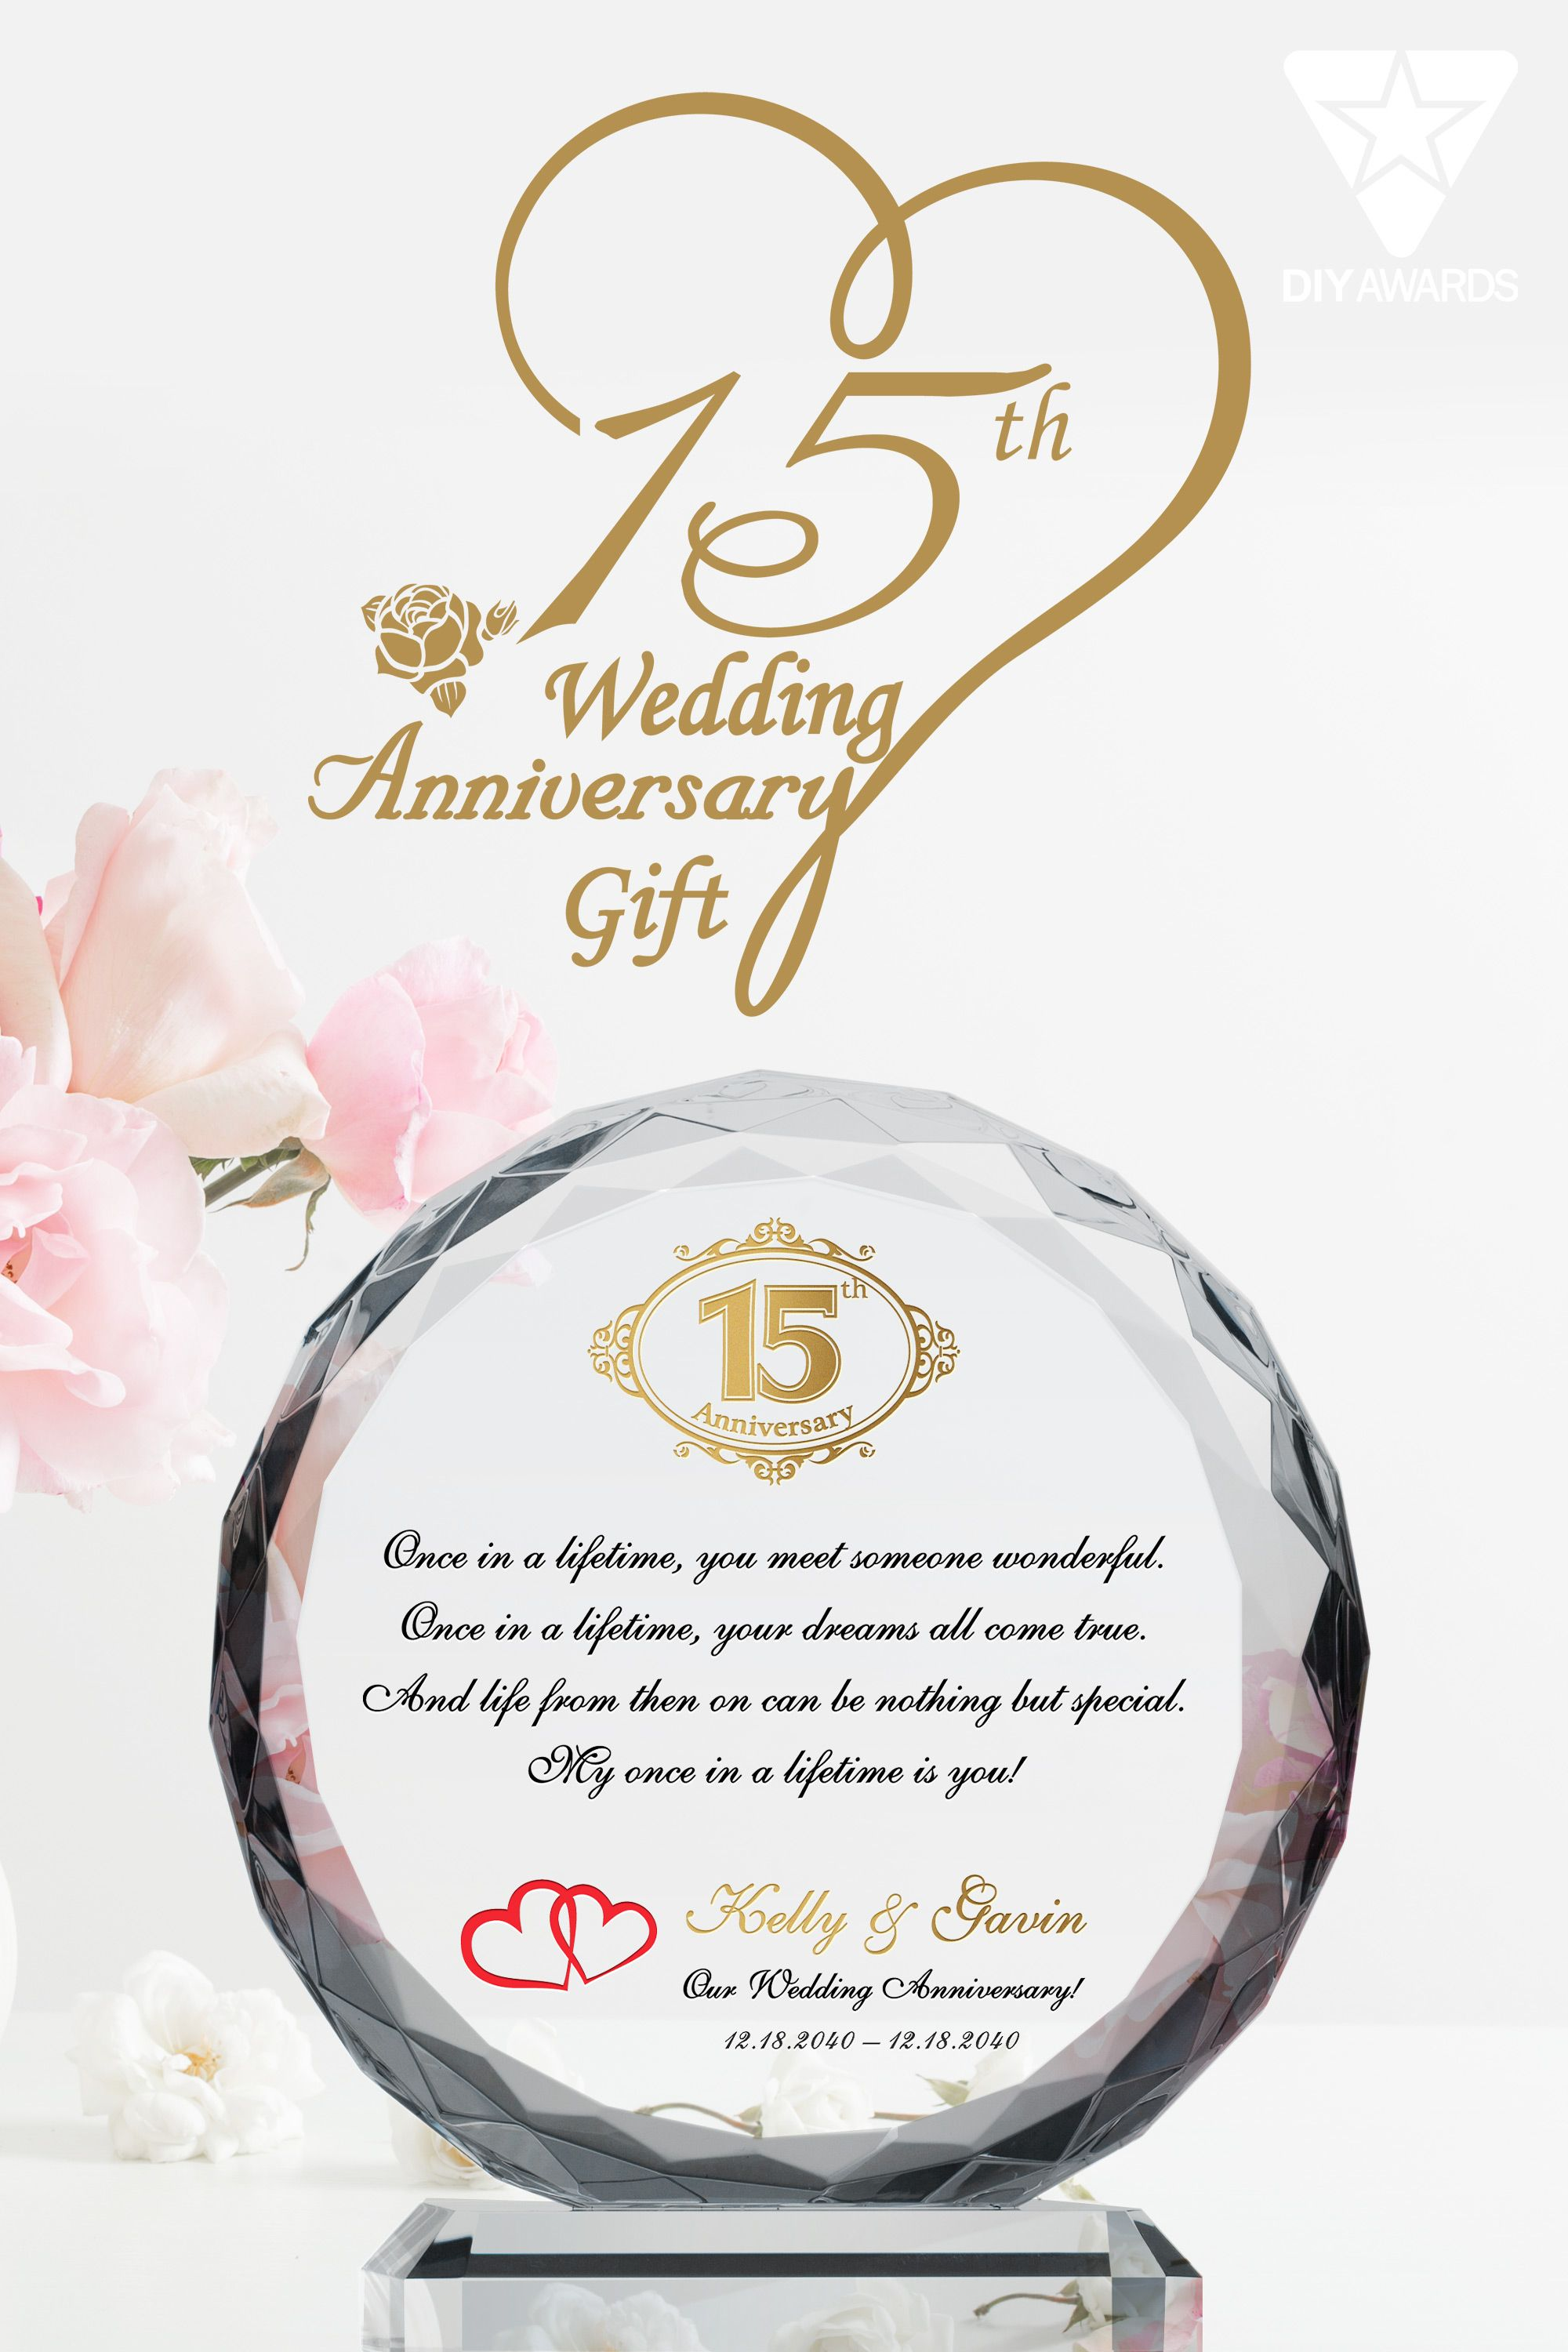 15th (Crystal) Wedding Anniversary Gifts in 2020 15th